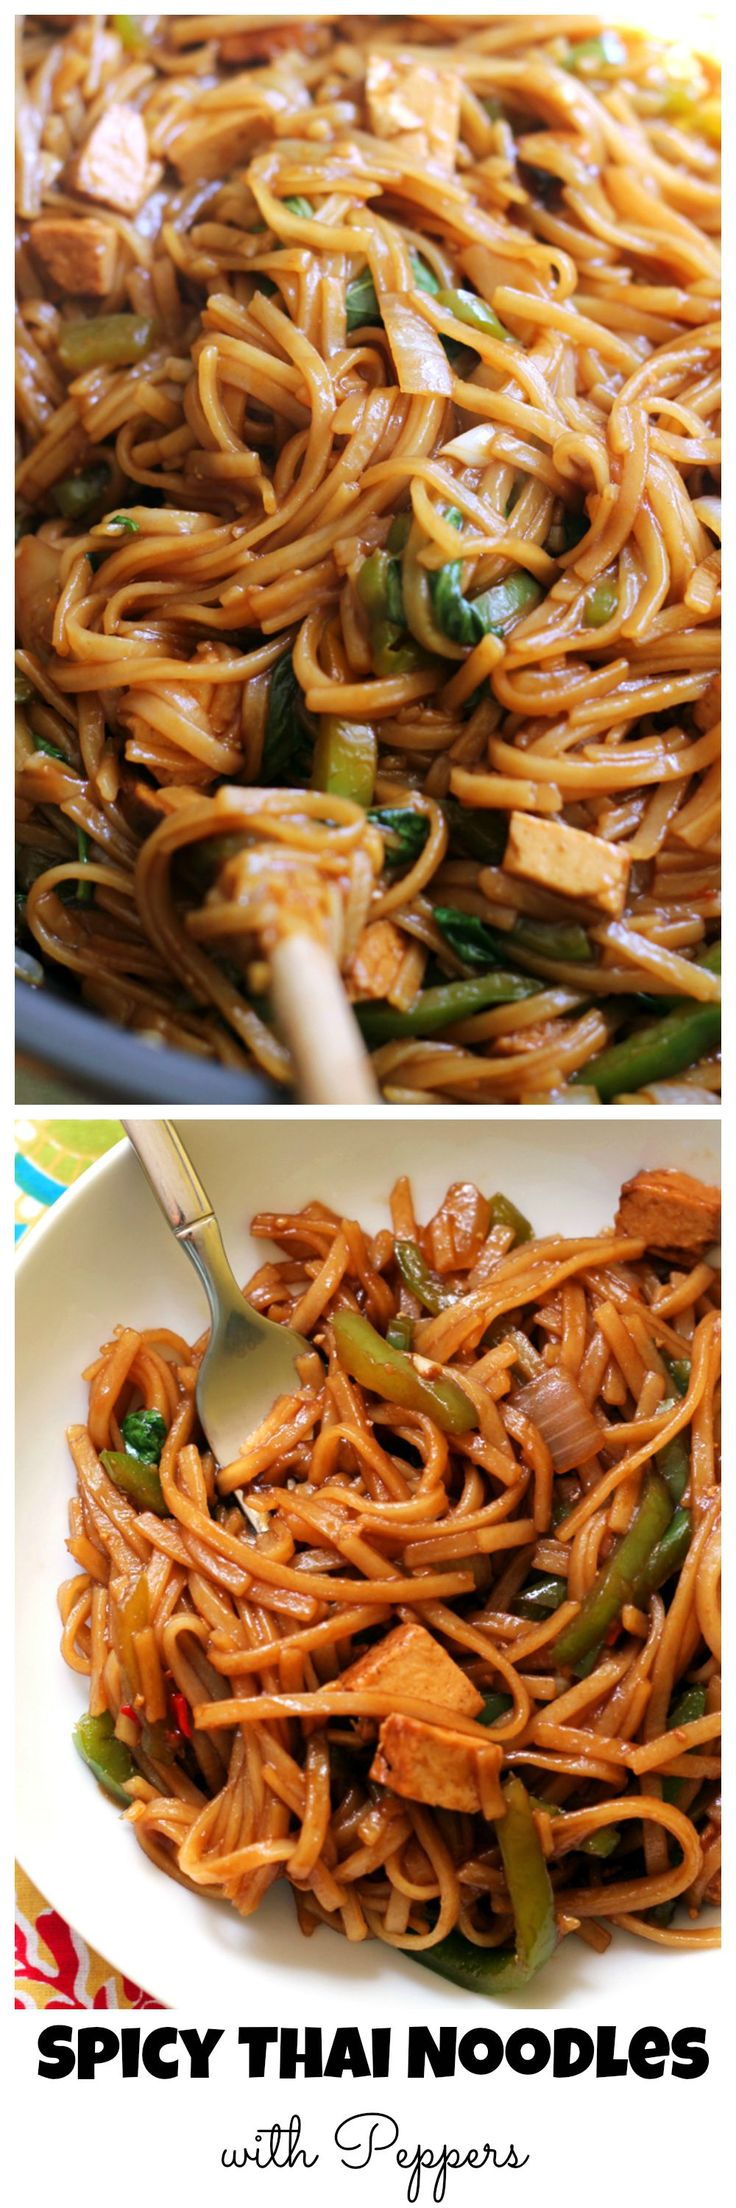 best 25 pat thai ideas on pinterest asian cuisine so exciting